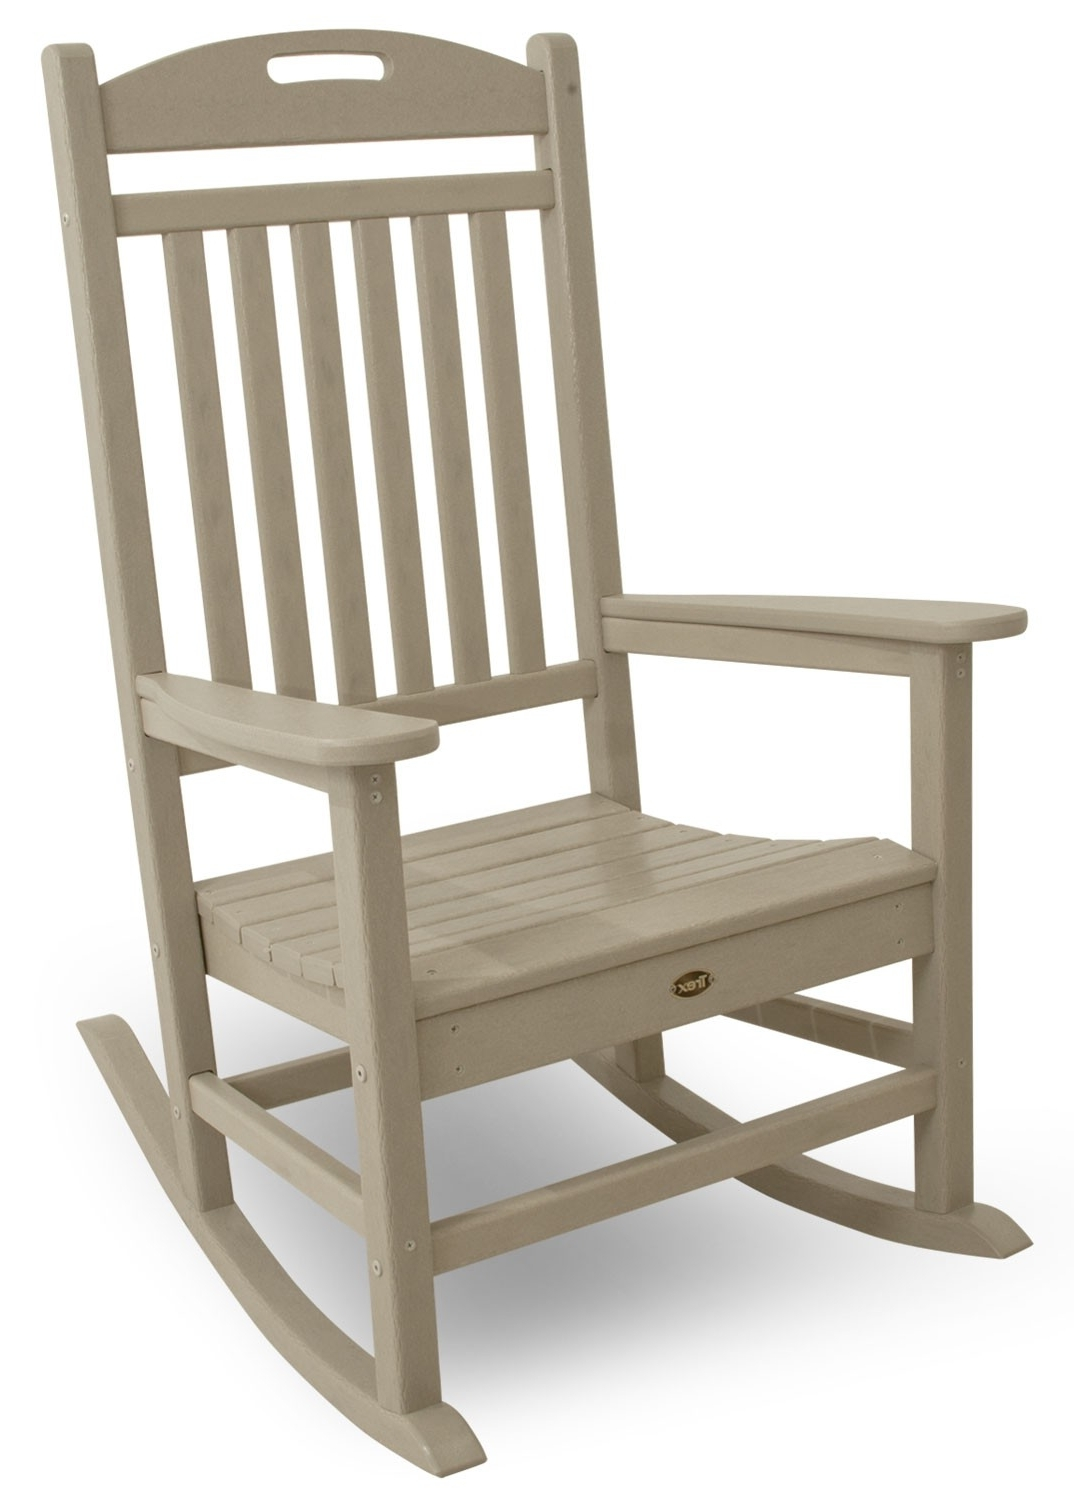 Yacht Club Rocking Chair For Most Recently Released Outdoor Rocking Chairs (View 20 of 20)